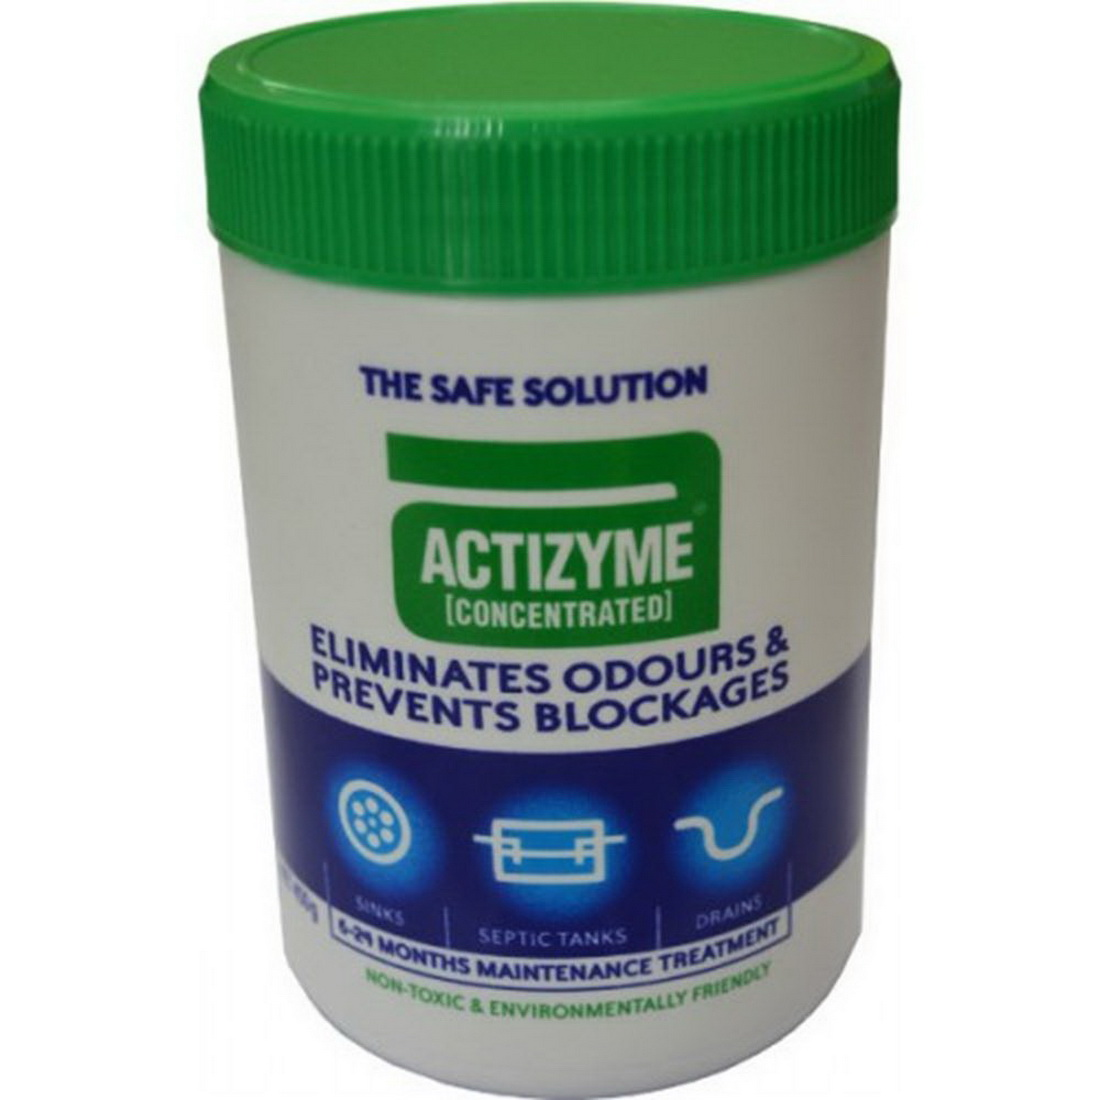 Actizyme 450g Concentrated Drain Cleaner & Odour Eliminator